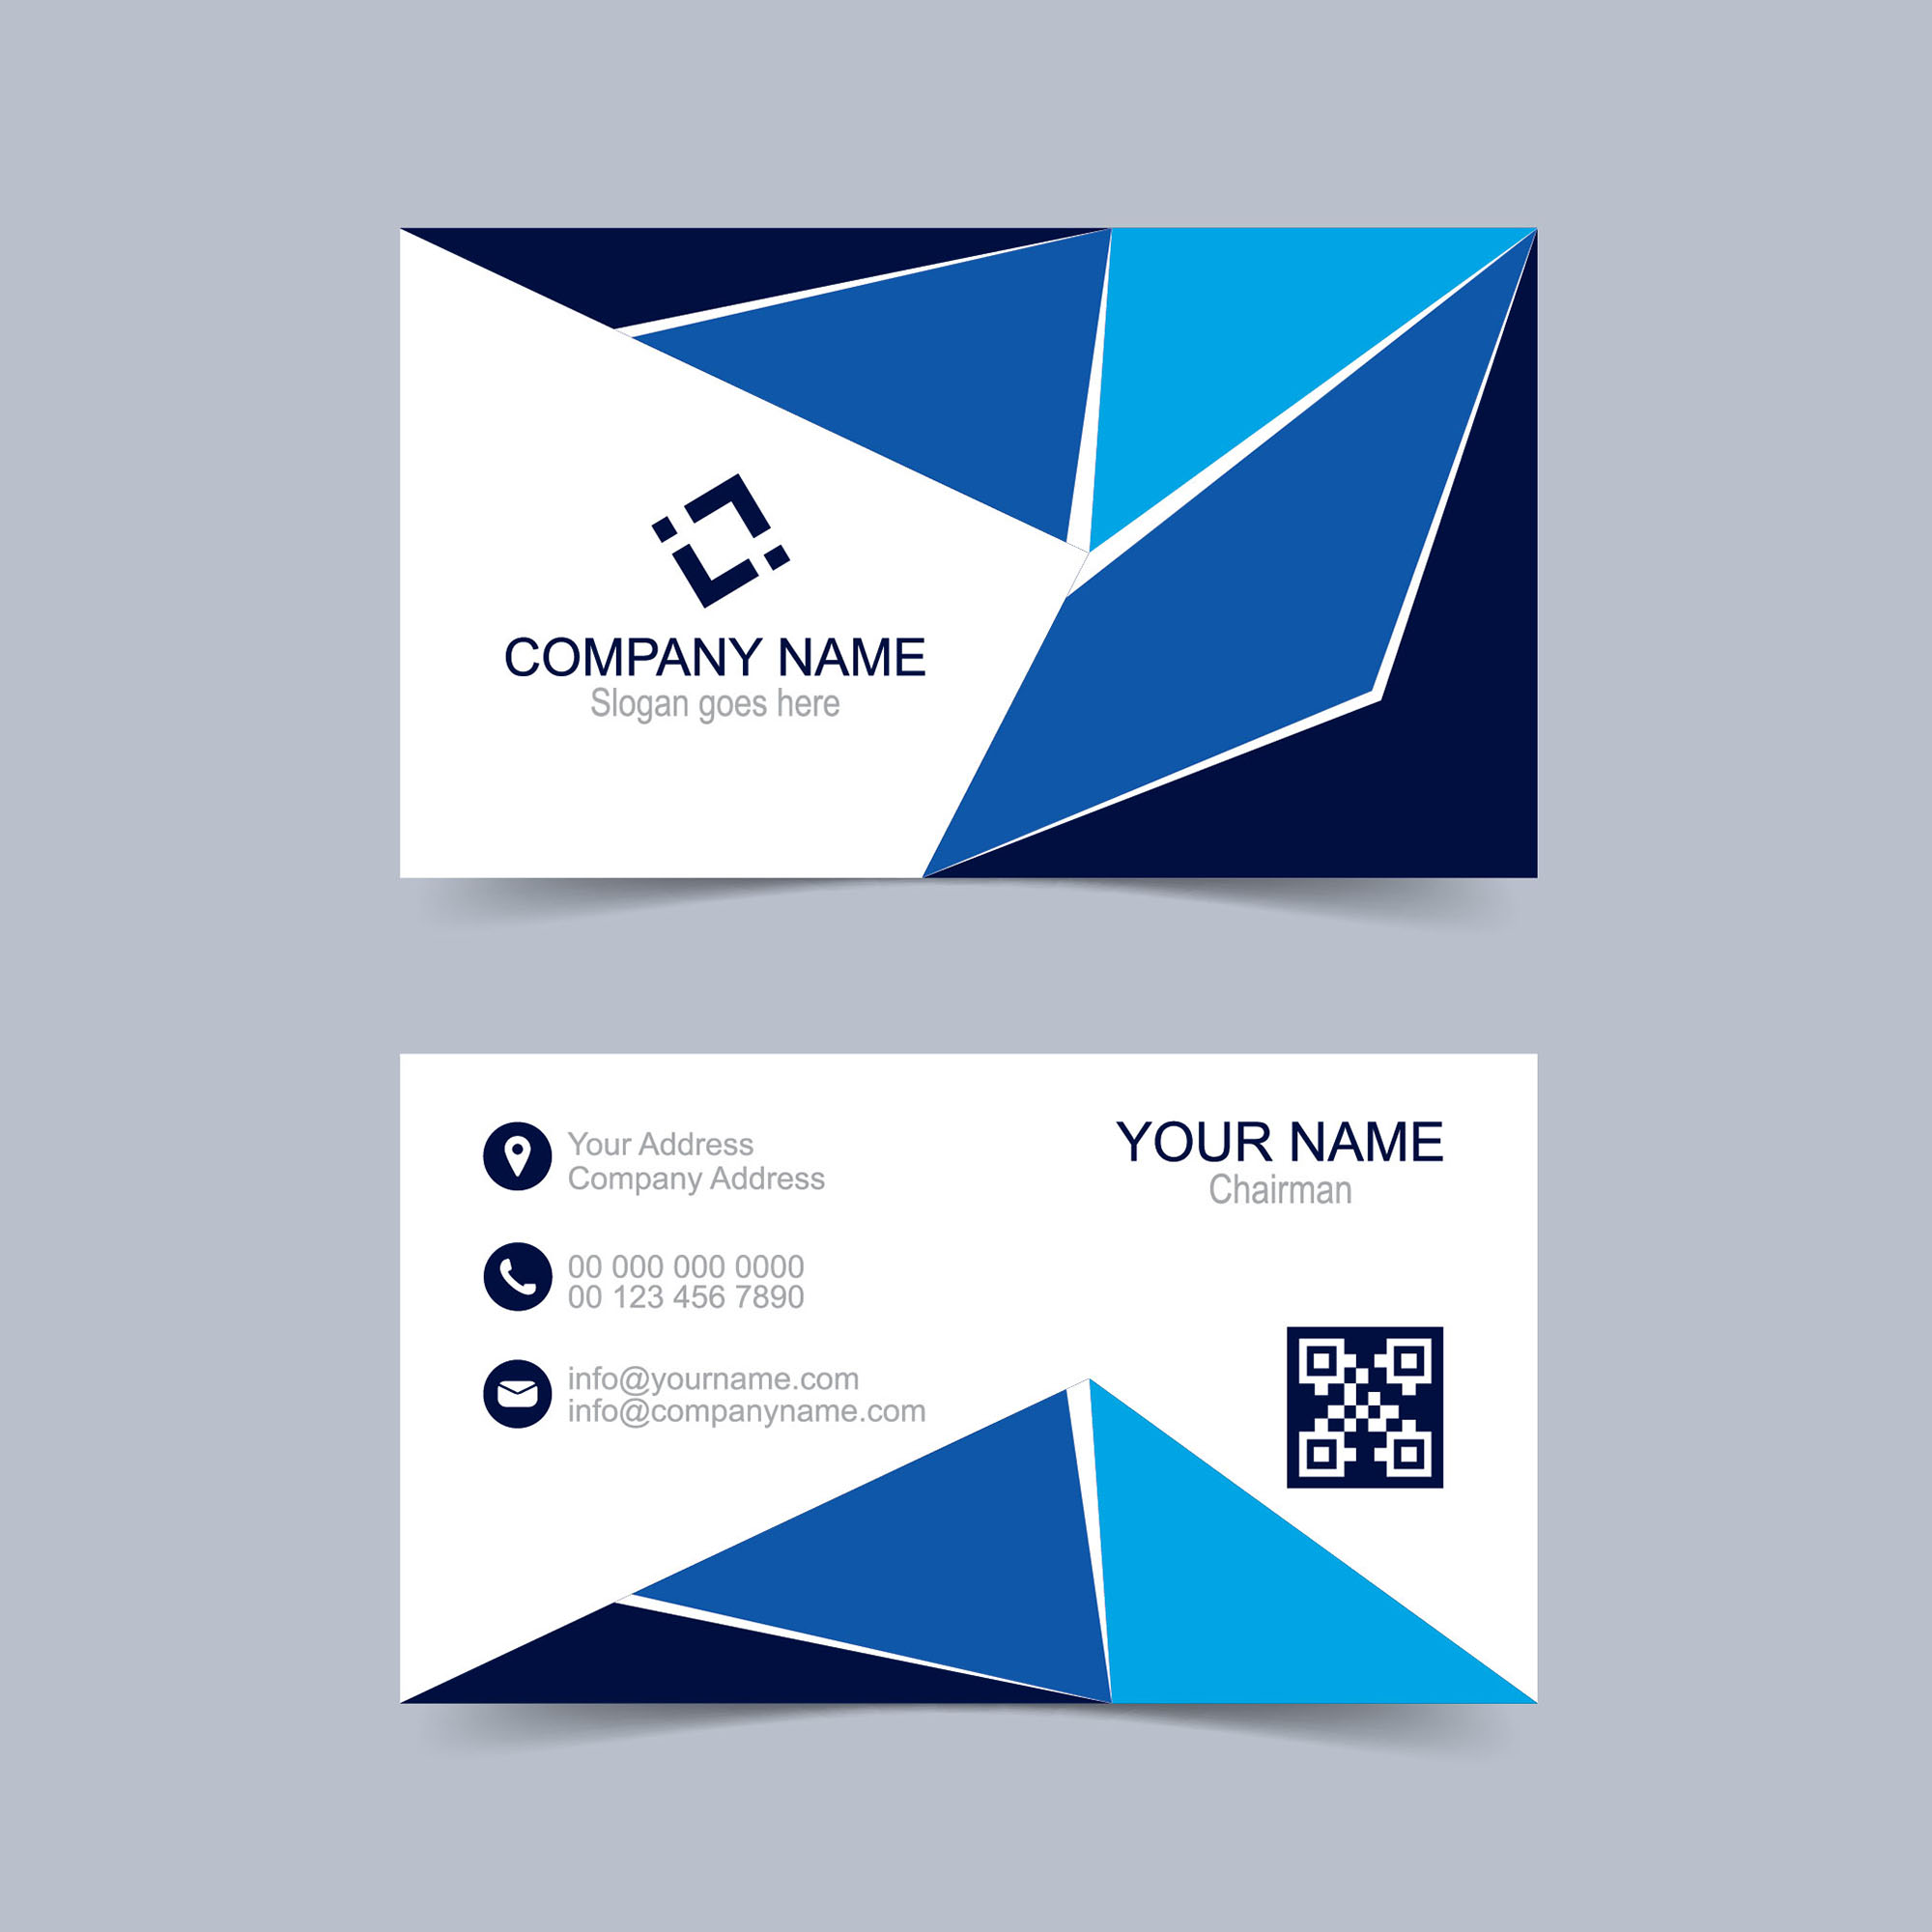 Creative business card design free download wisxi business card business cards business card design business card template design templates cheaphphosting Image collections